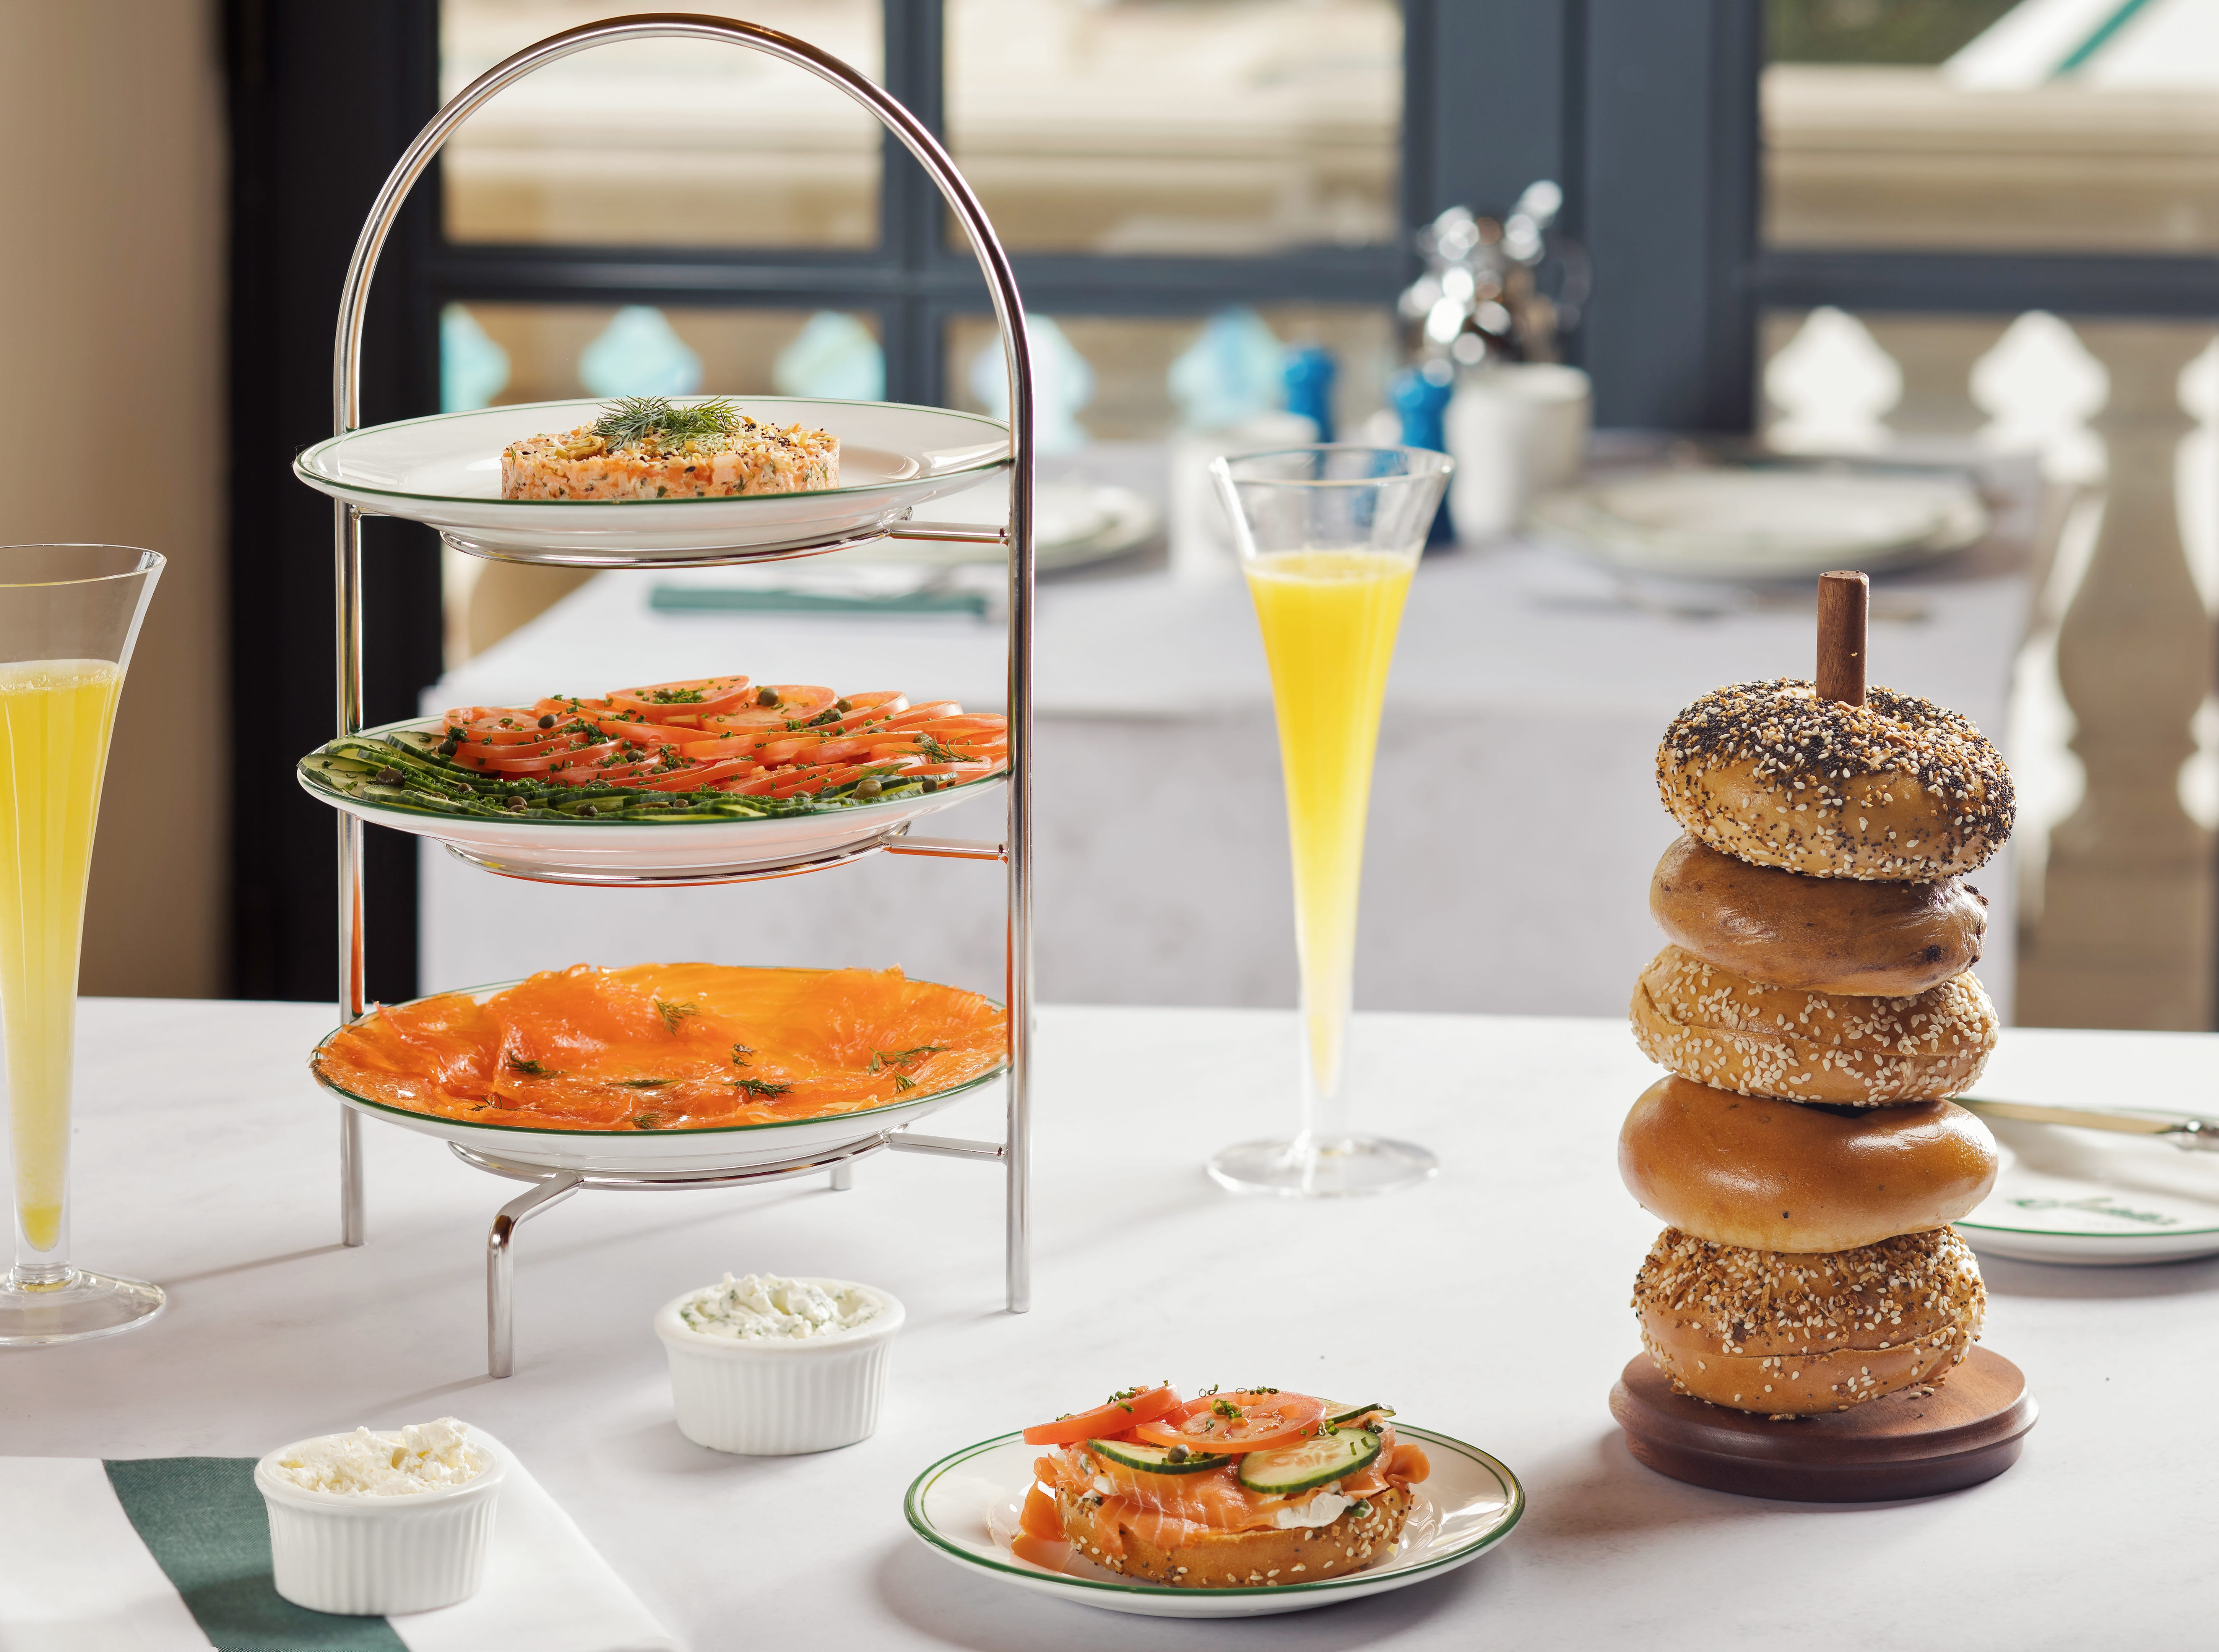 SADELLE'S in Bellagio Resort & Casino. A tea curate offers salmon salad and house salmon served with house bagels.